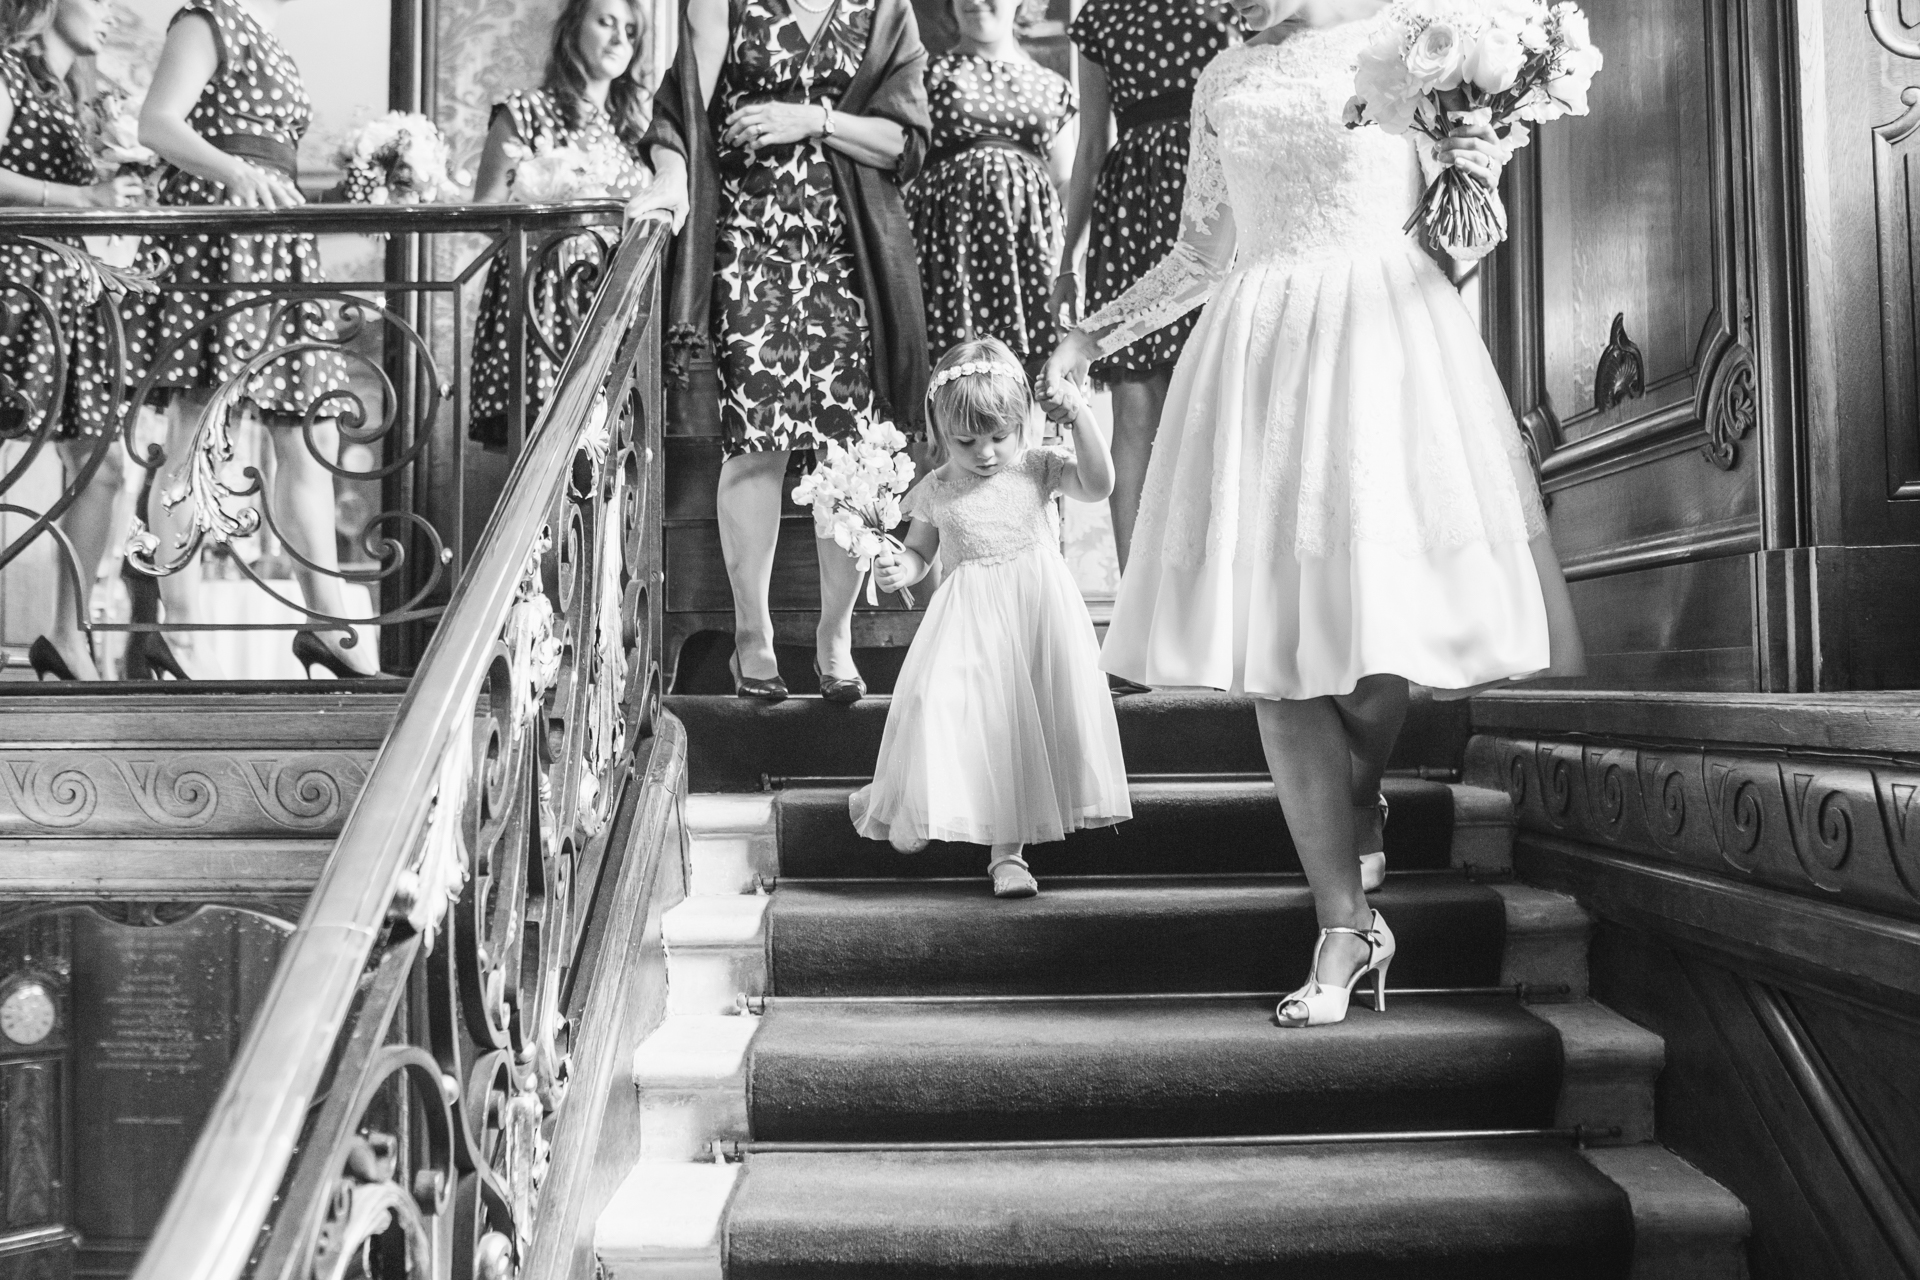 heading to get married at islington town hall in london